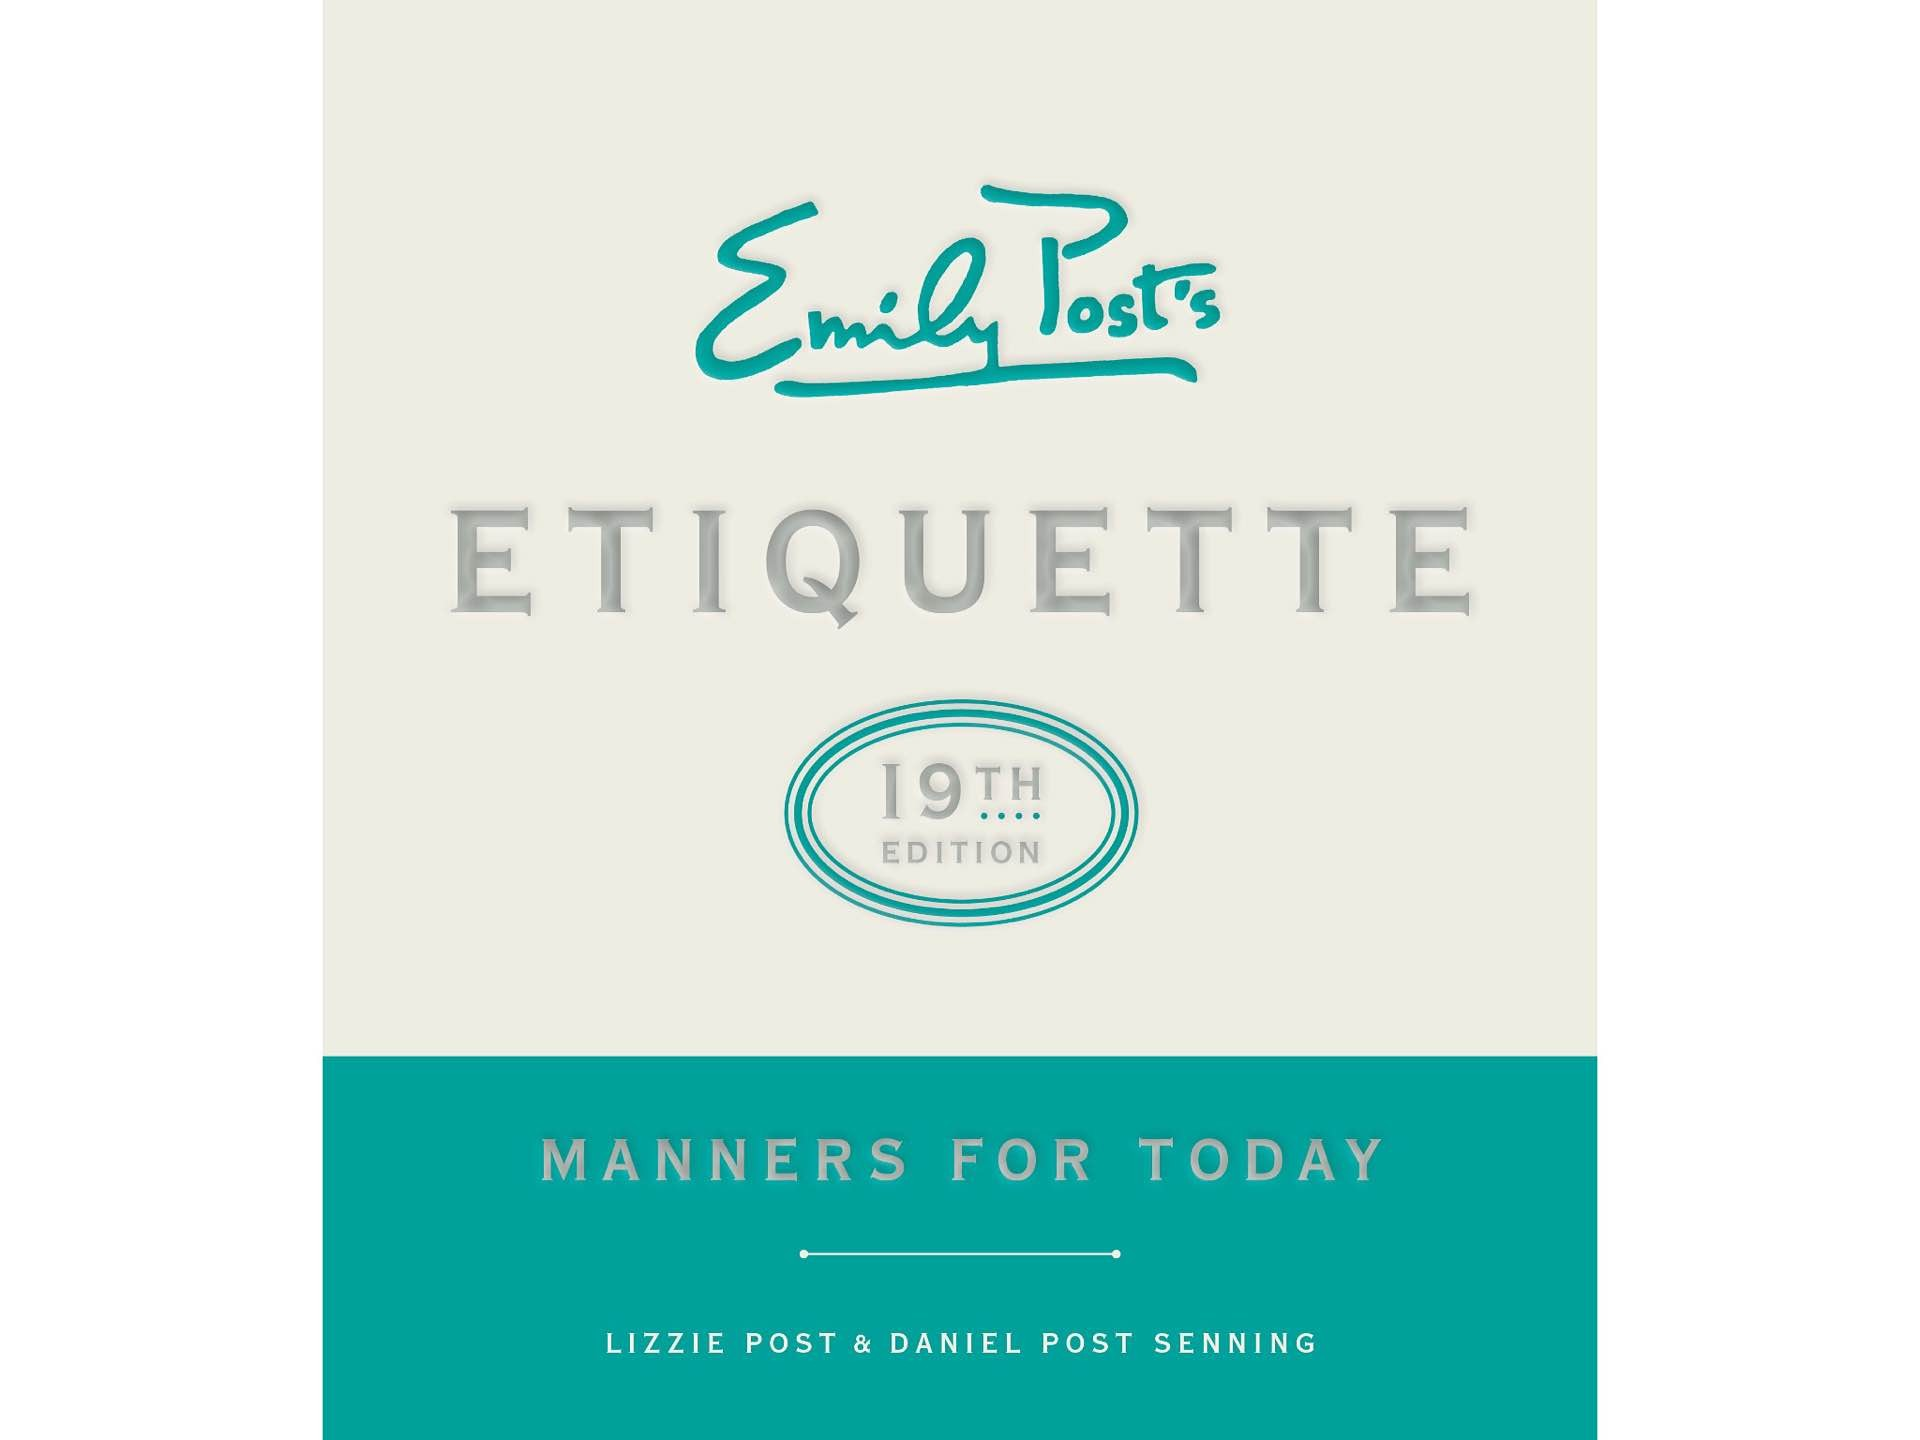 Emily Post Etiquette Book: Books To Make You A More Mindful Person